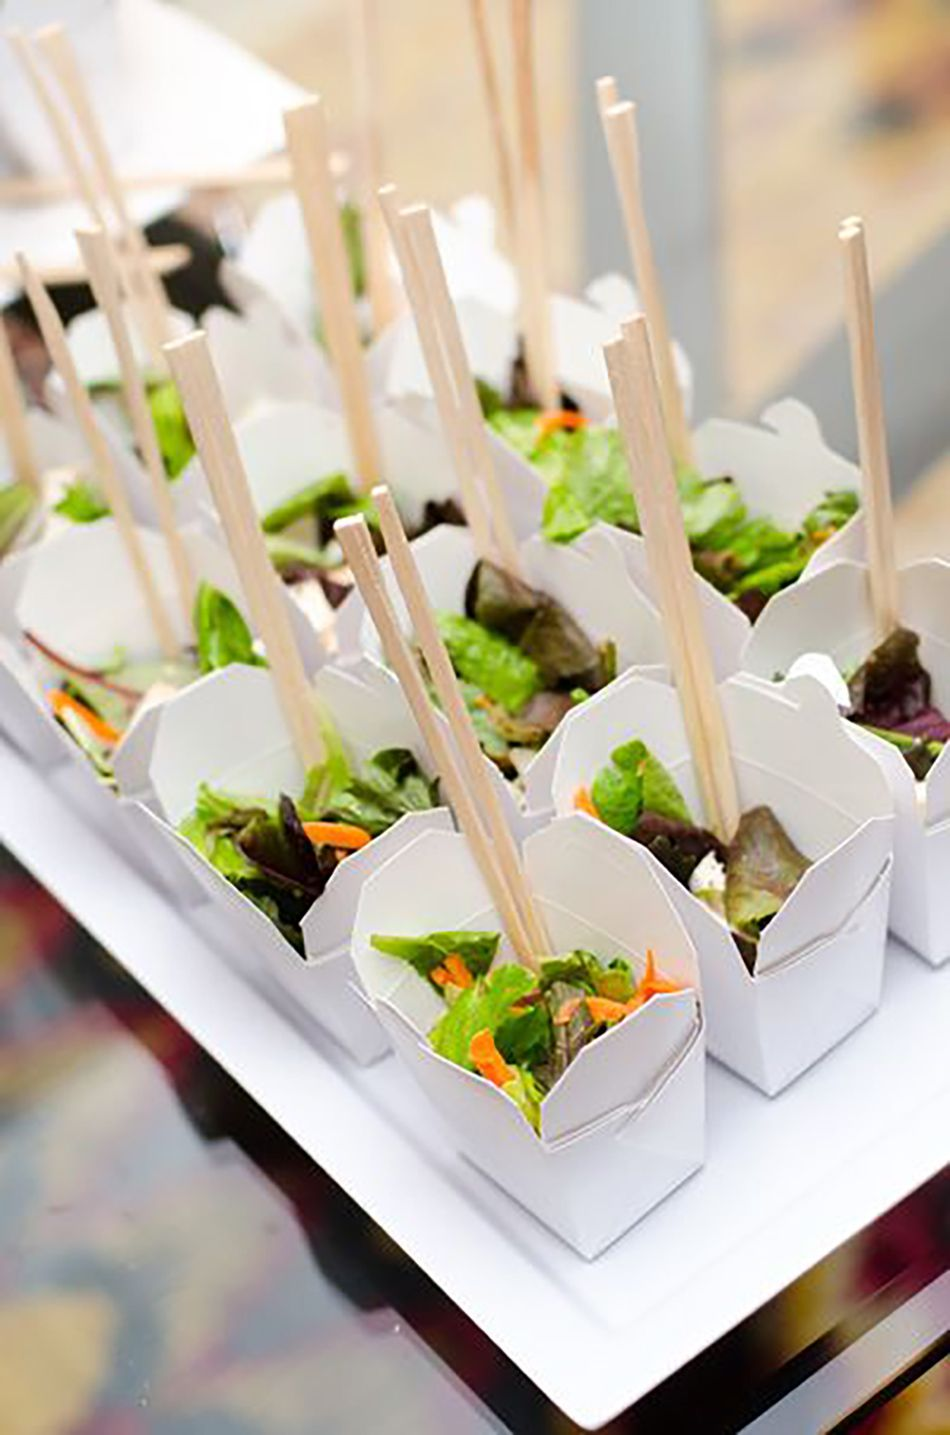 Marias Küche Catering Takeaway Boxes Of Food With Chop Sticks Party Ideas Wedding